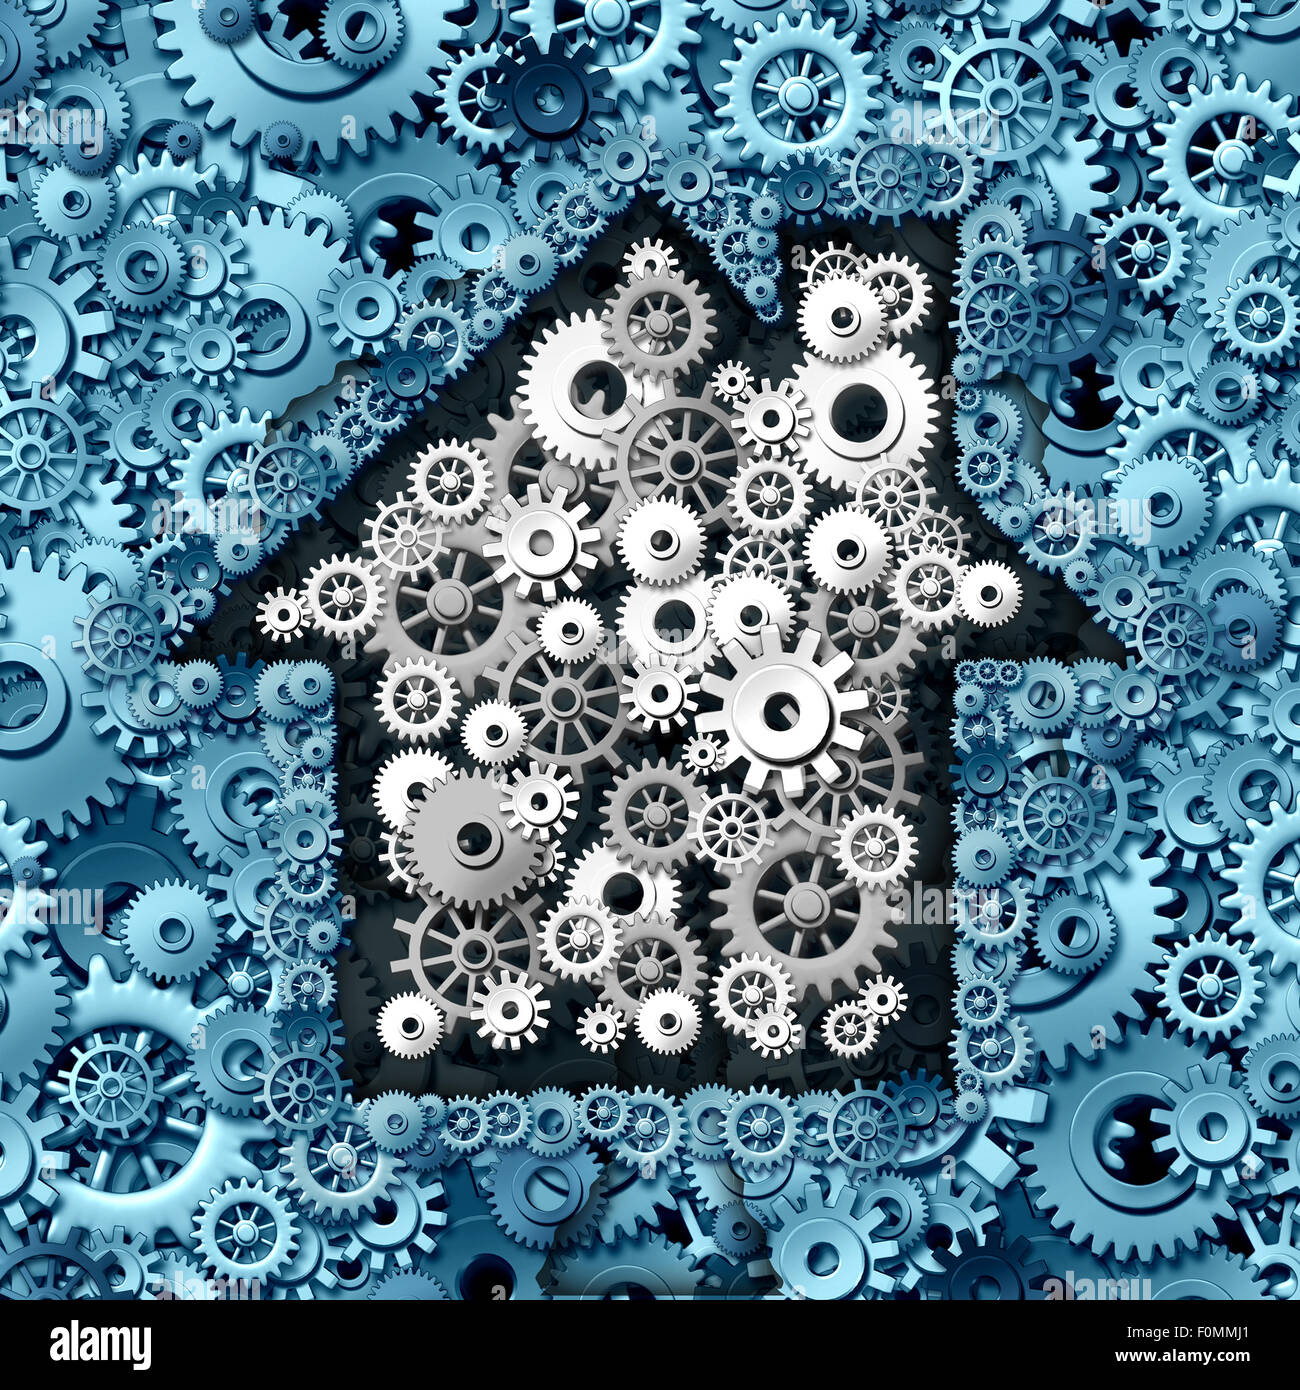 Real estate business concept as house or home automation made of gears and cog wheels as a symbol for investing - Stock Image